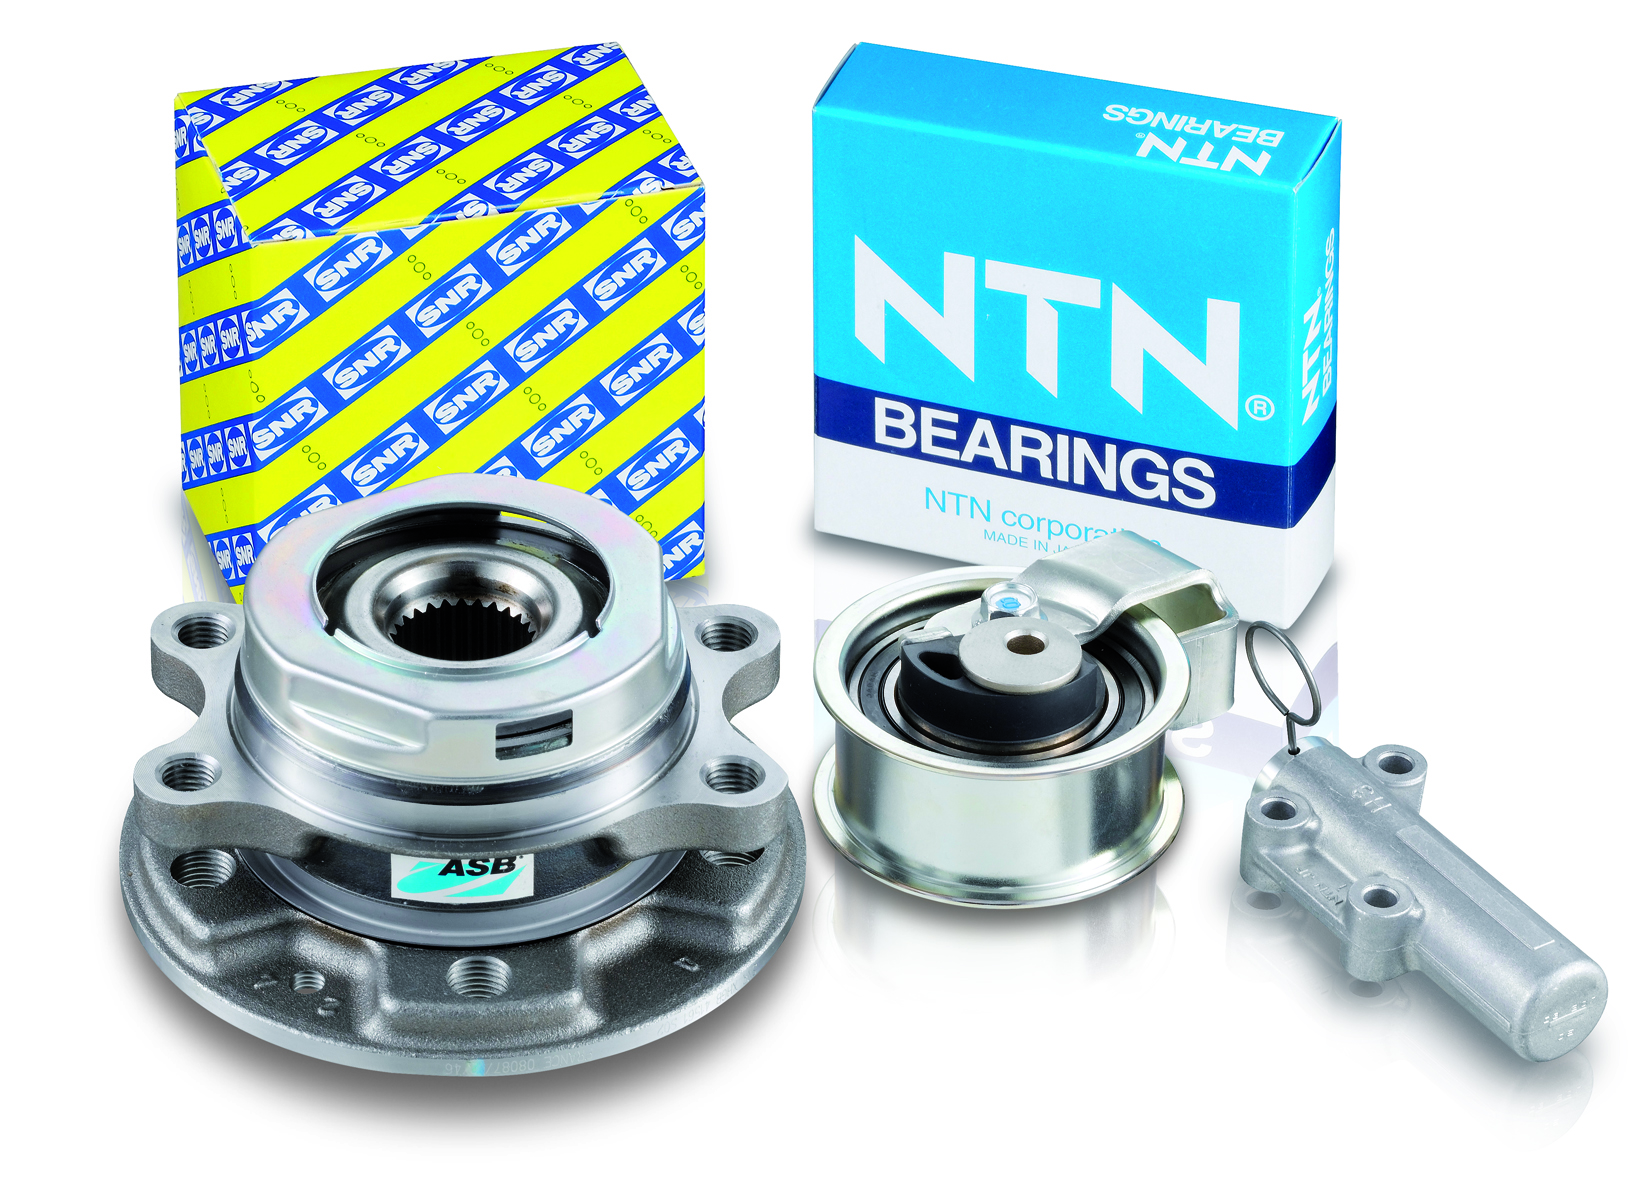 Top bearing manufacturer NTN-SNR officially announces Mineral